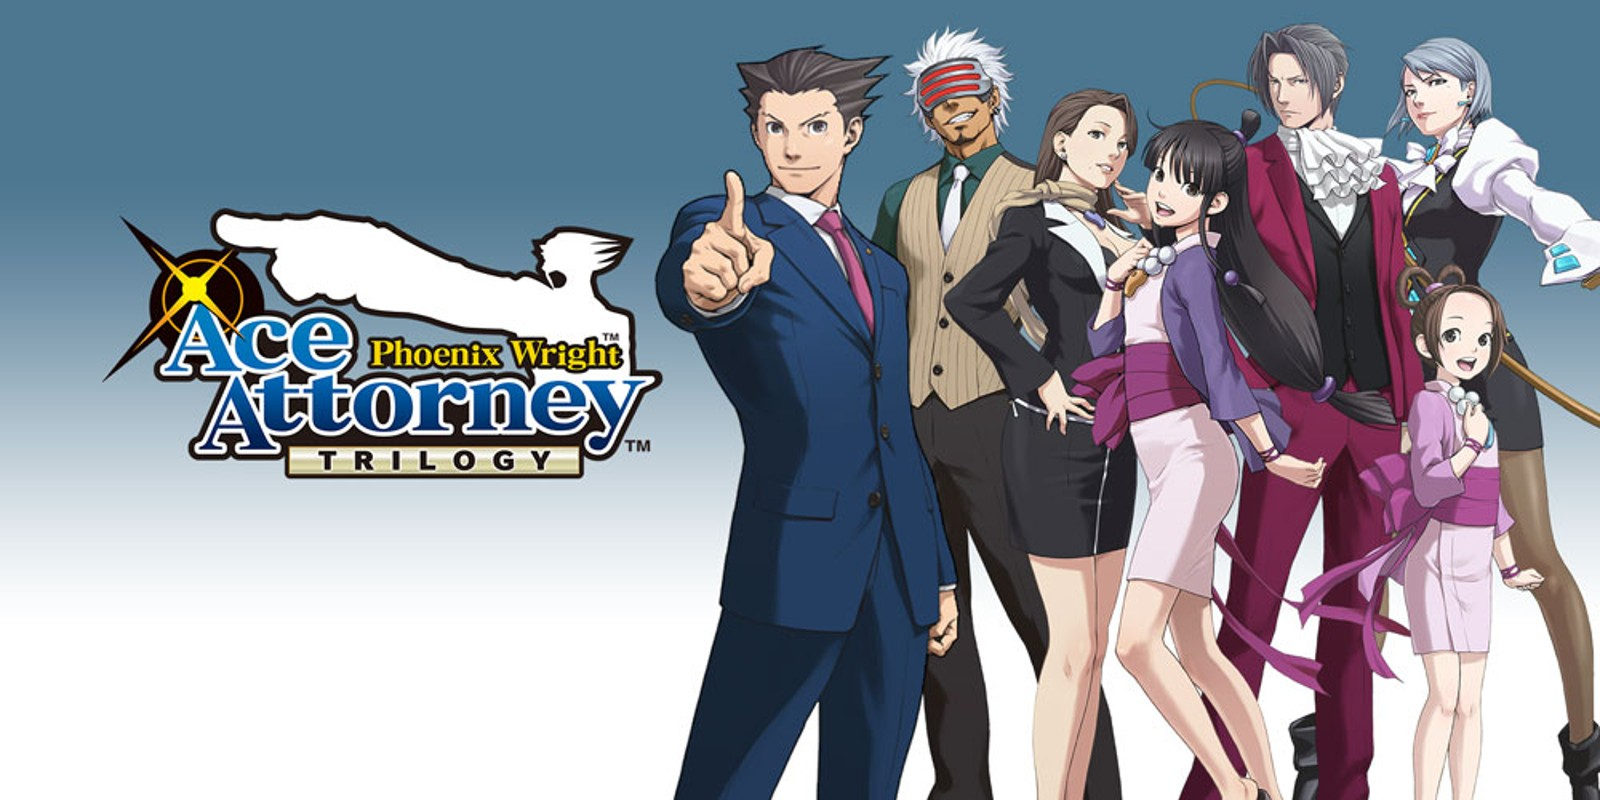 Phoenix-Wright-Ace-Attorney-Trilogy